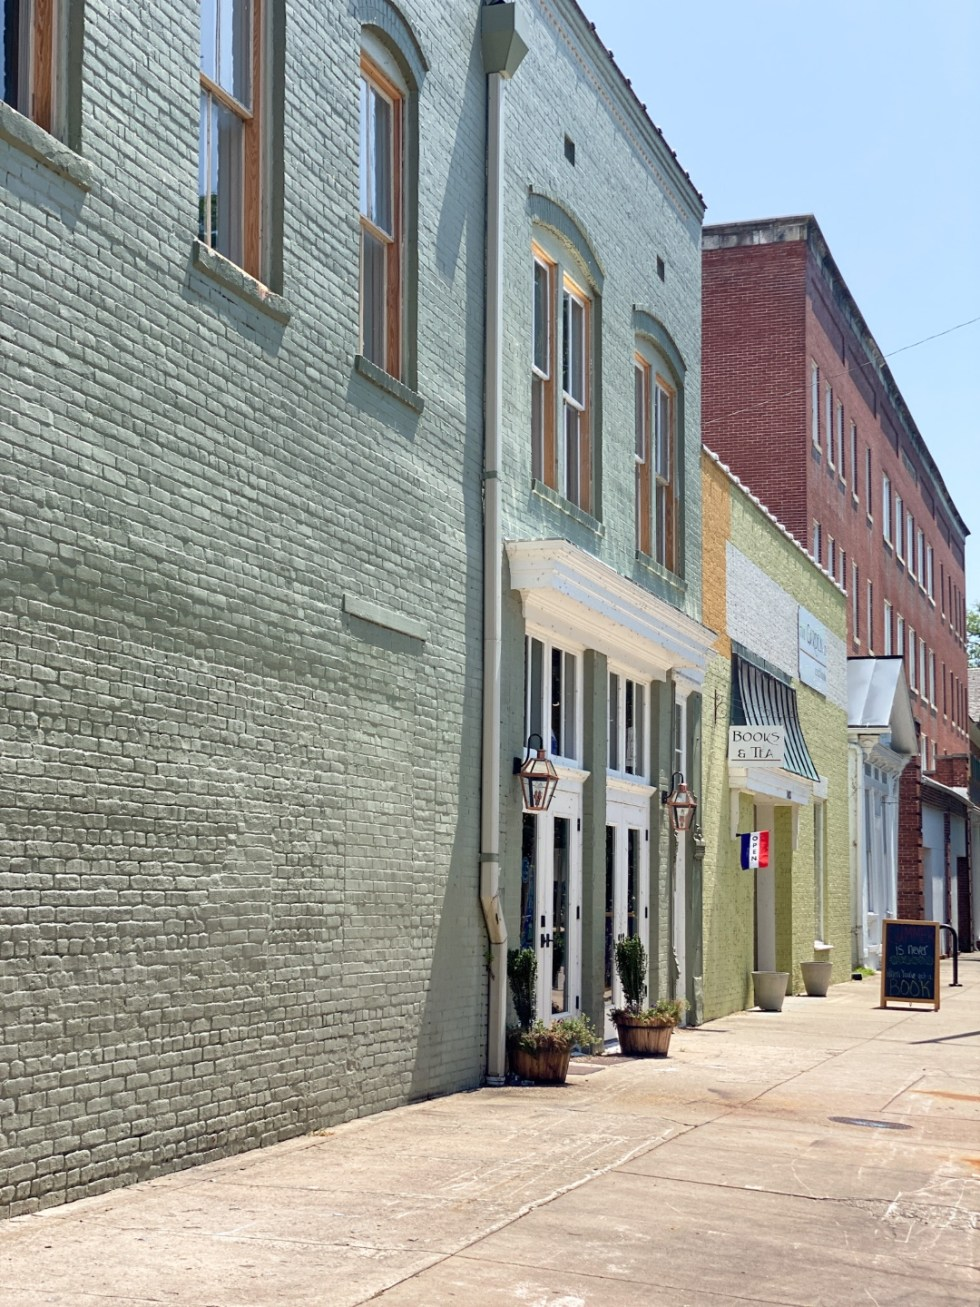 Top 10 Best Things to Do in Edenton, NC: A Complete Travel Guide - I'm Fixin' To - @imfixintoblog | Edenton Travel Guide by popular NC travel guid, I'm Fixin' To: image of colorful brick buildings.